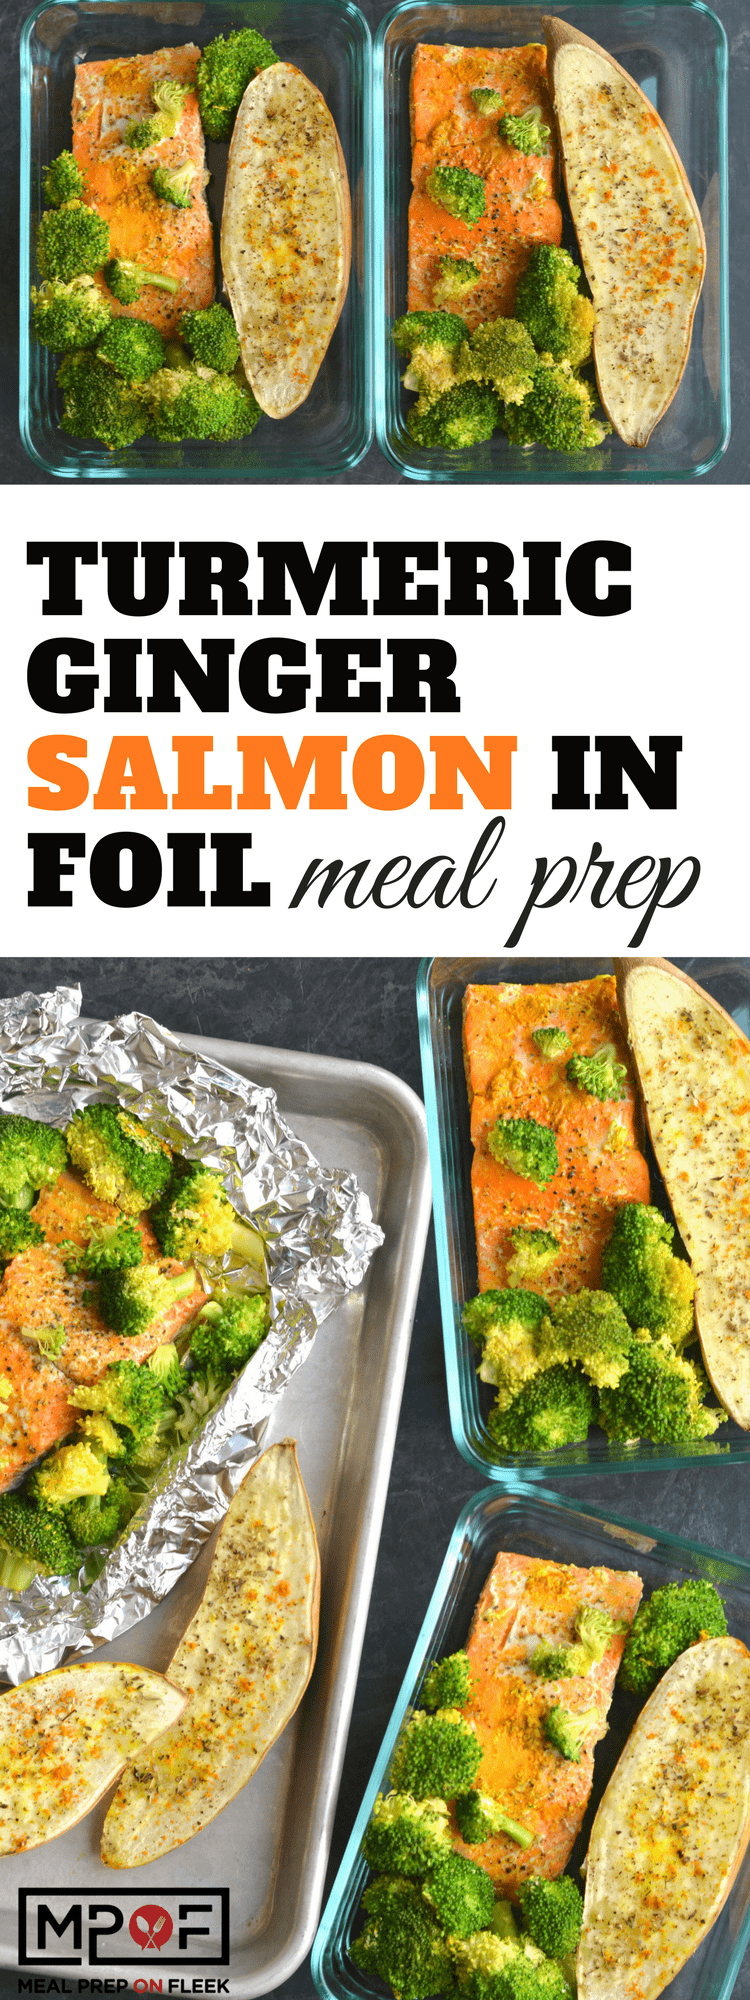 Turmeric Ginger Salmon in Foil Meal Prep